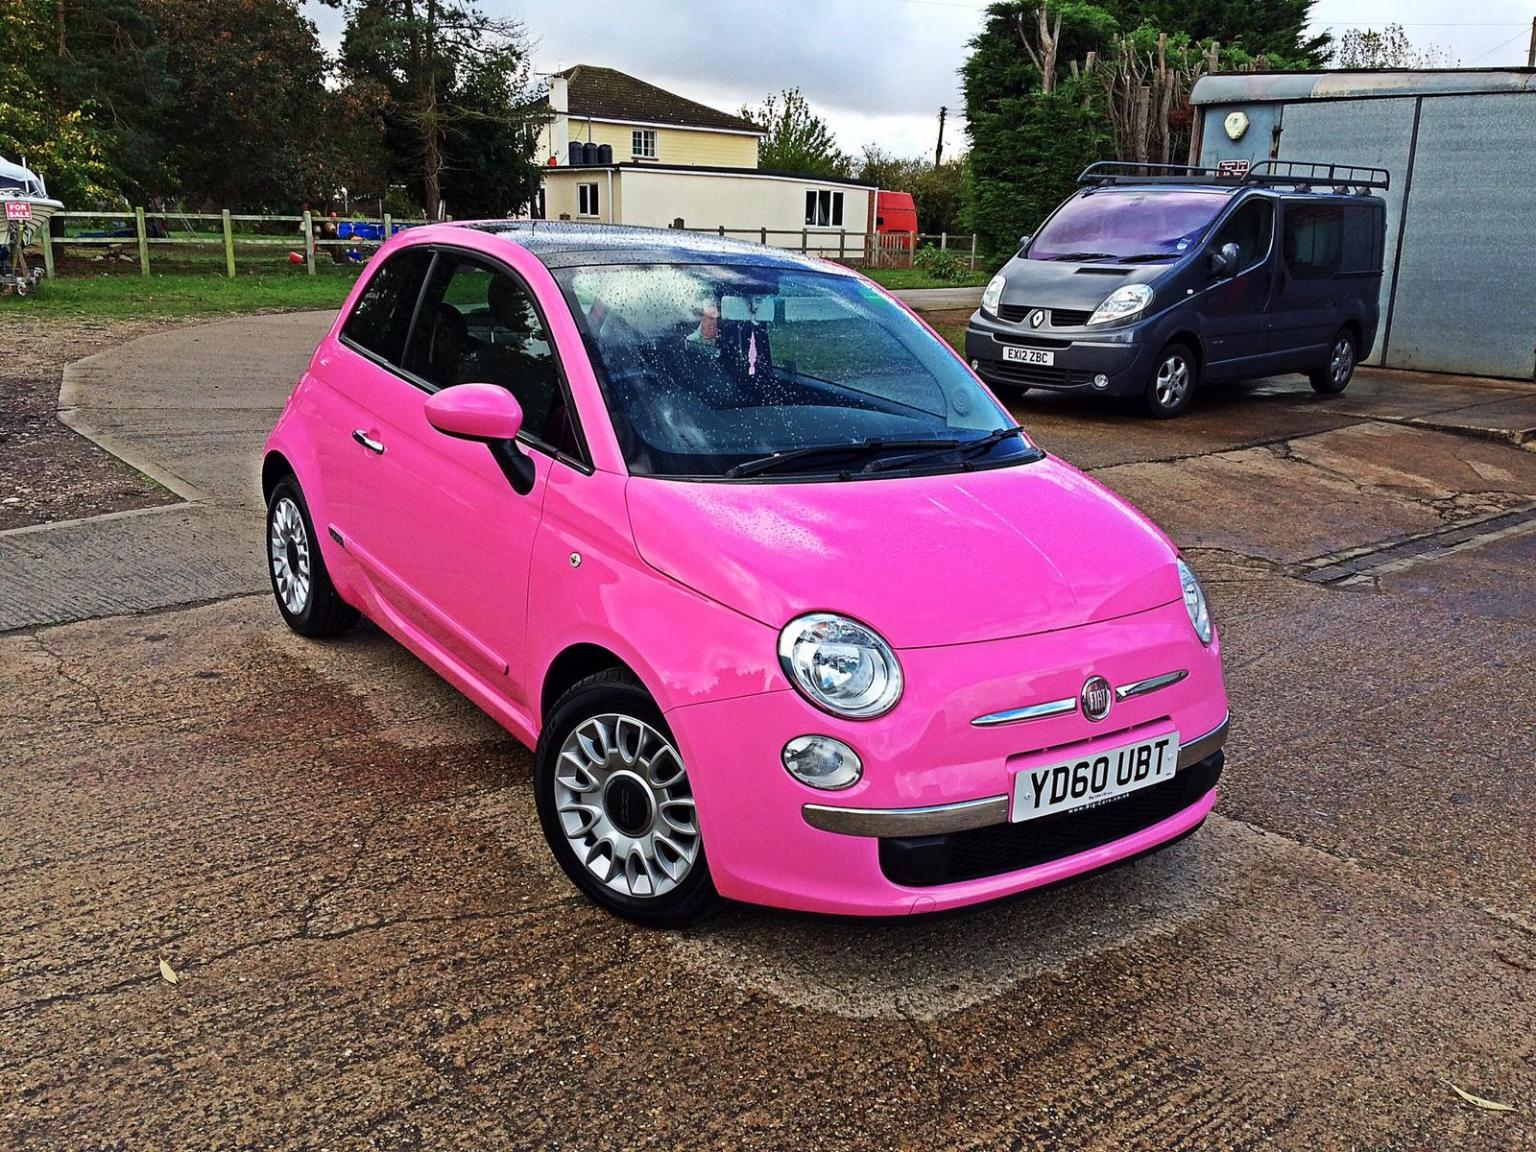 Pink Fiat 500 In Co2 Colchester For 3 000 00 For Sale Shpock